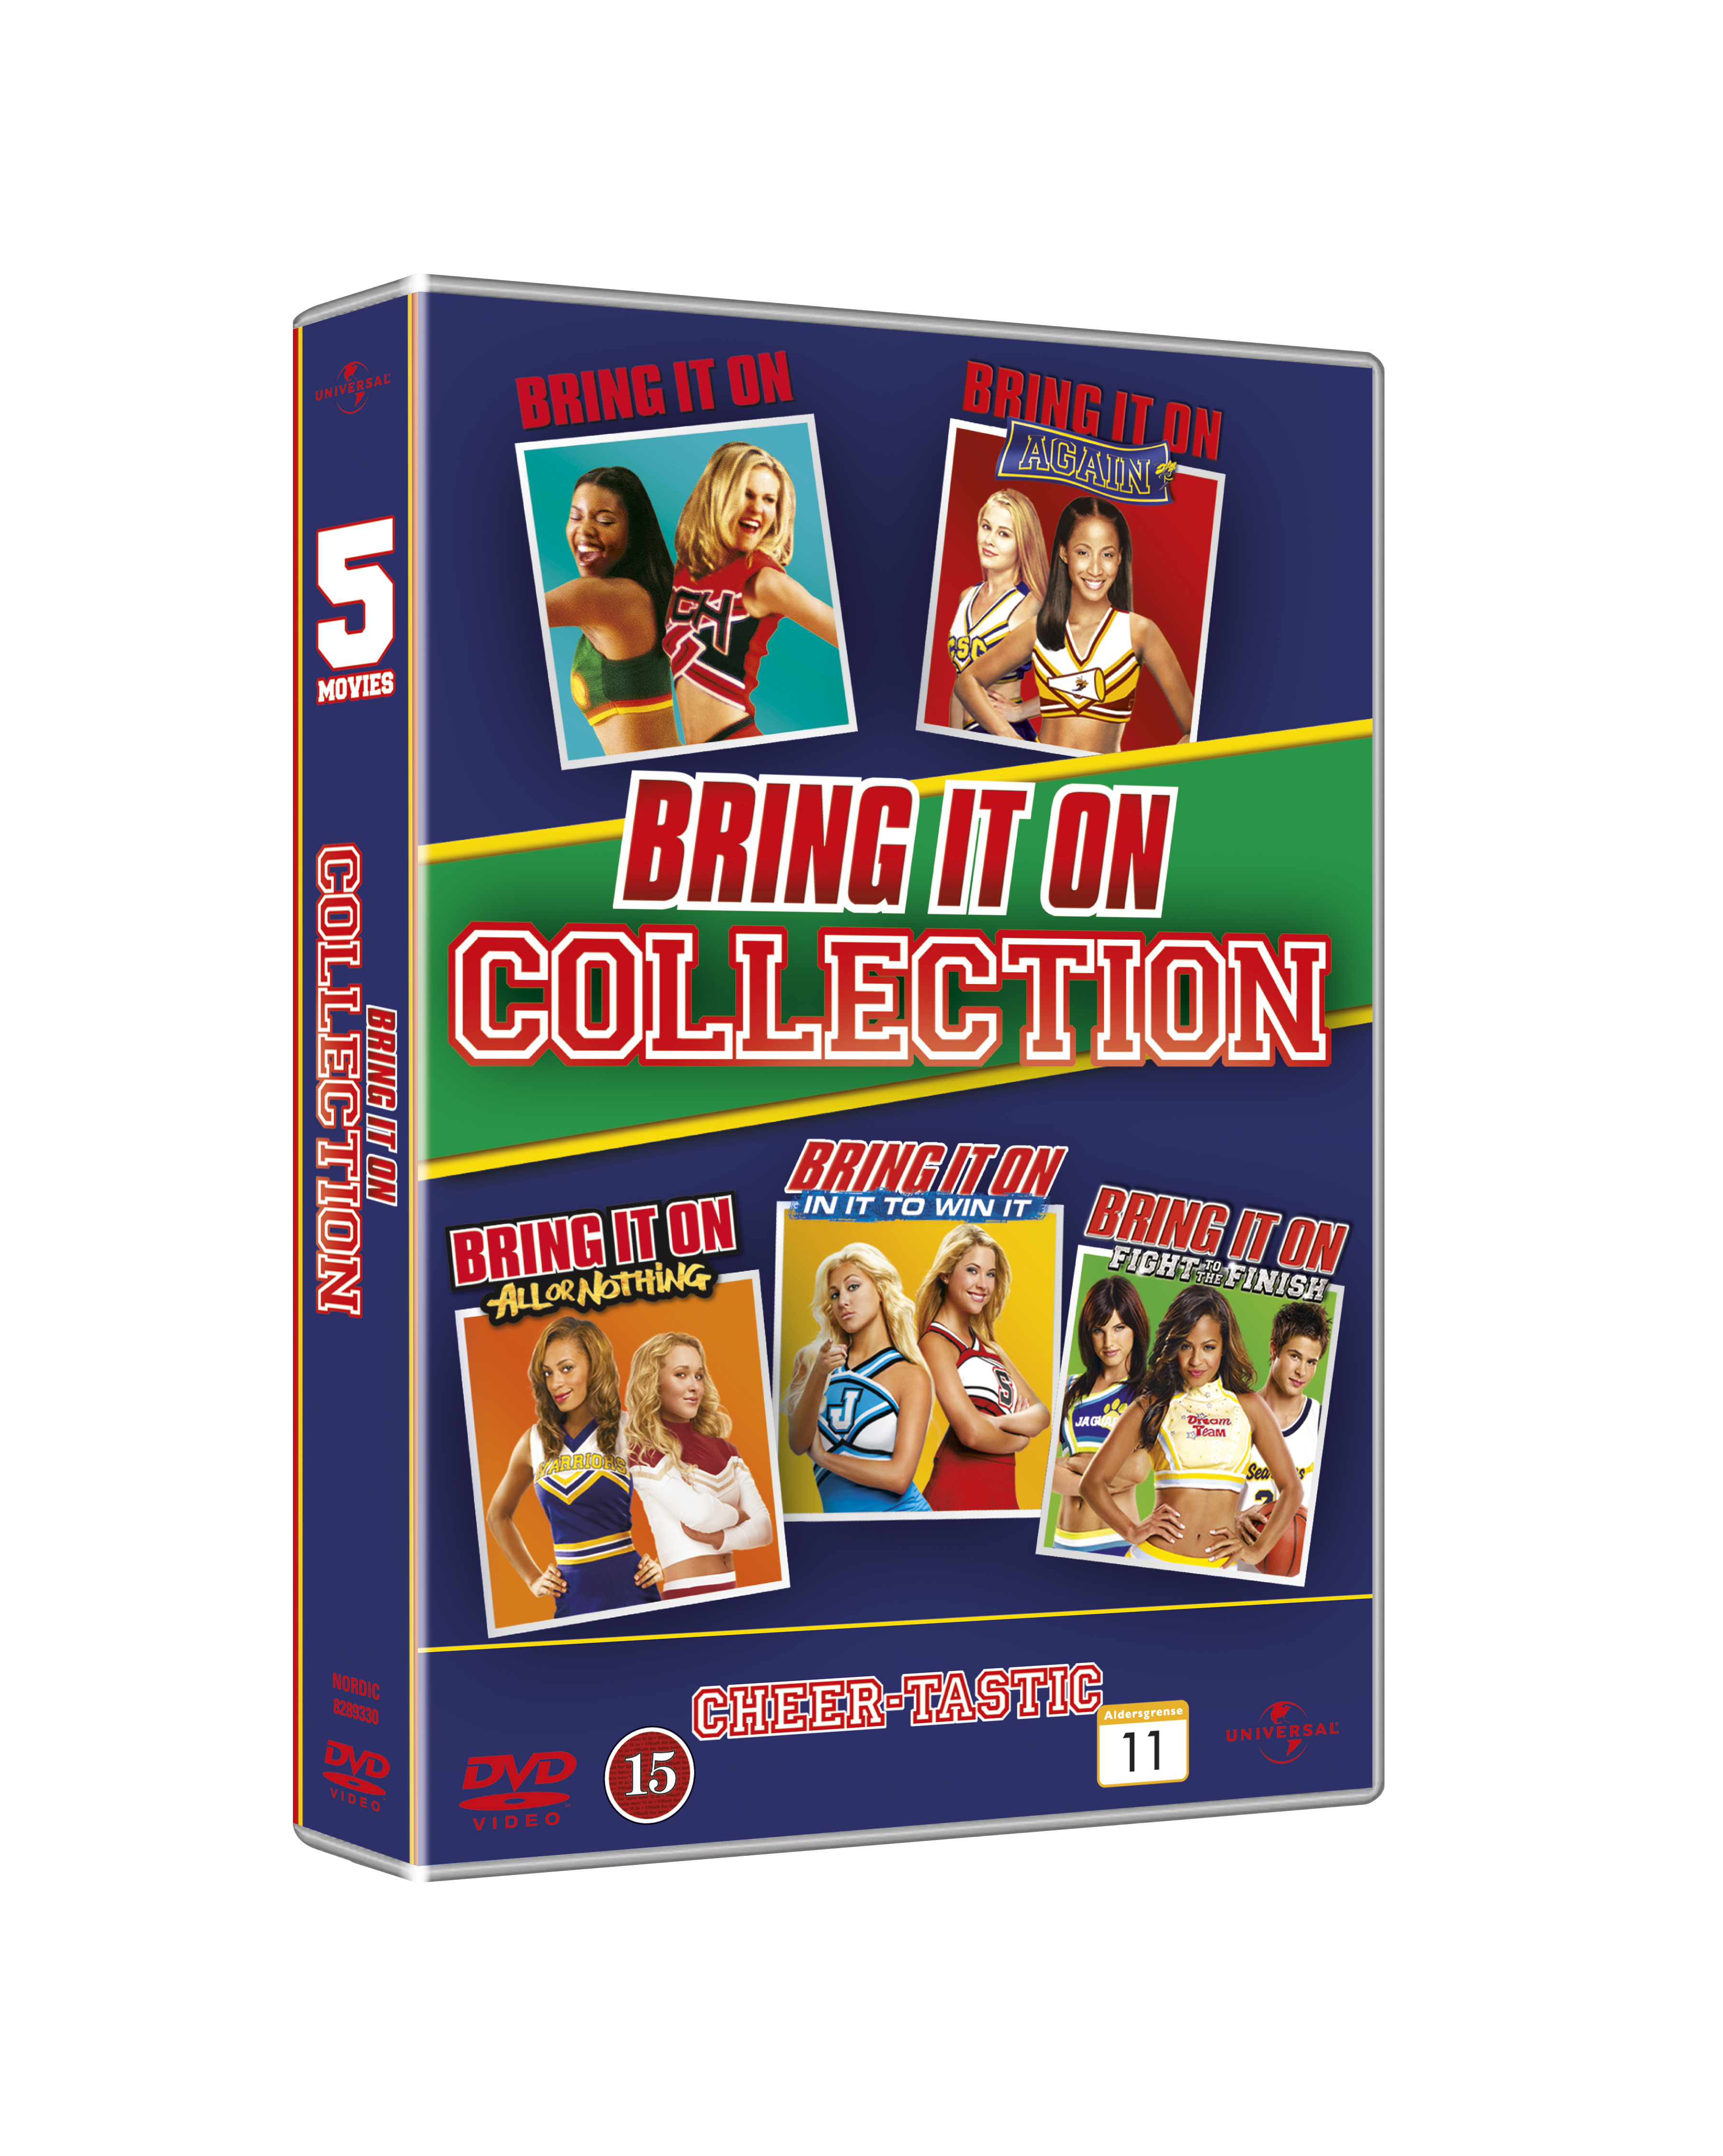 Bring it on 1-5 complete